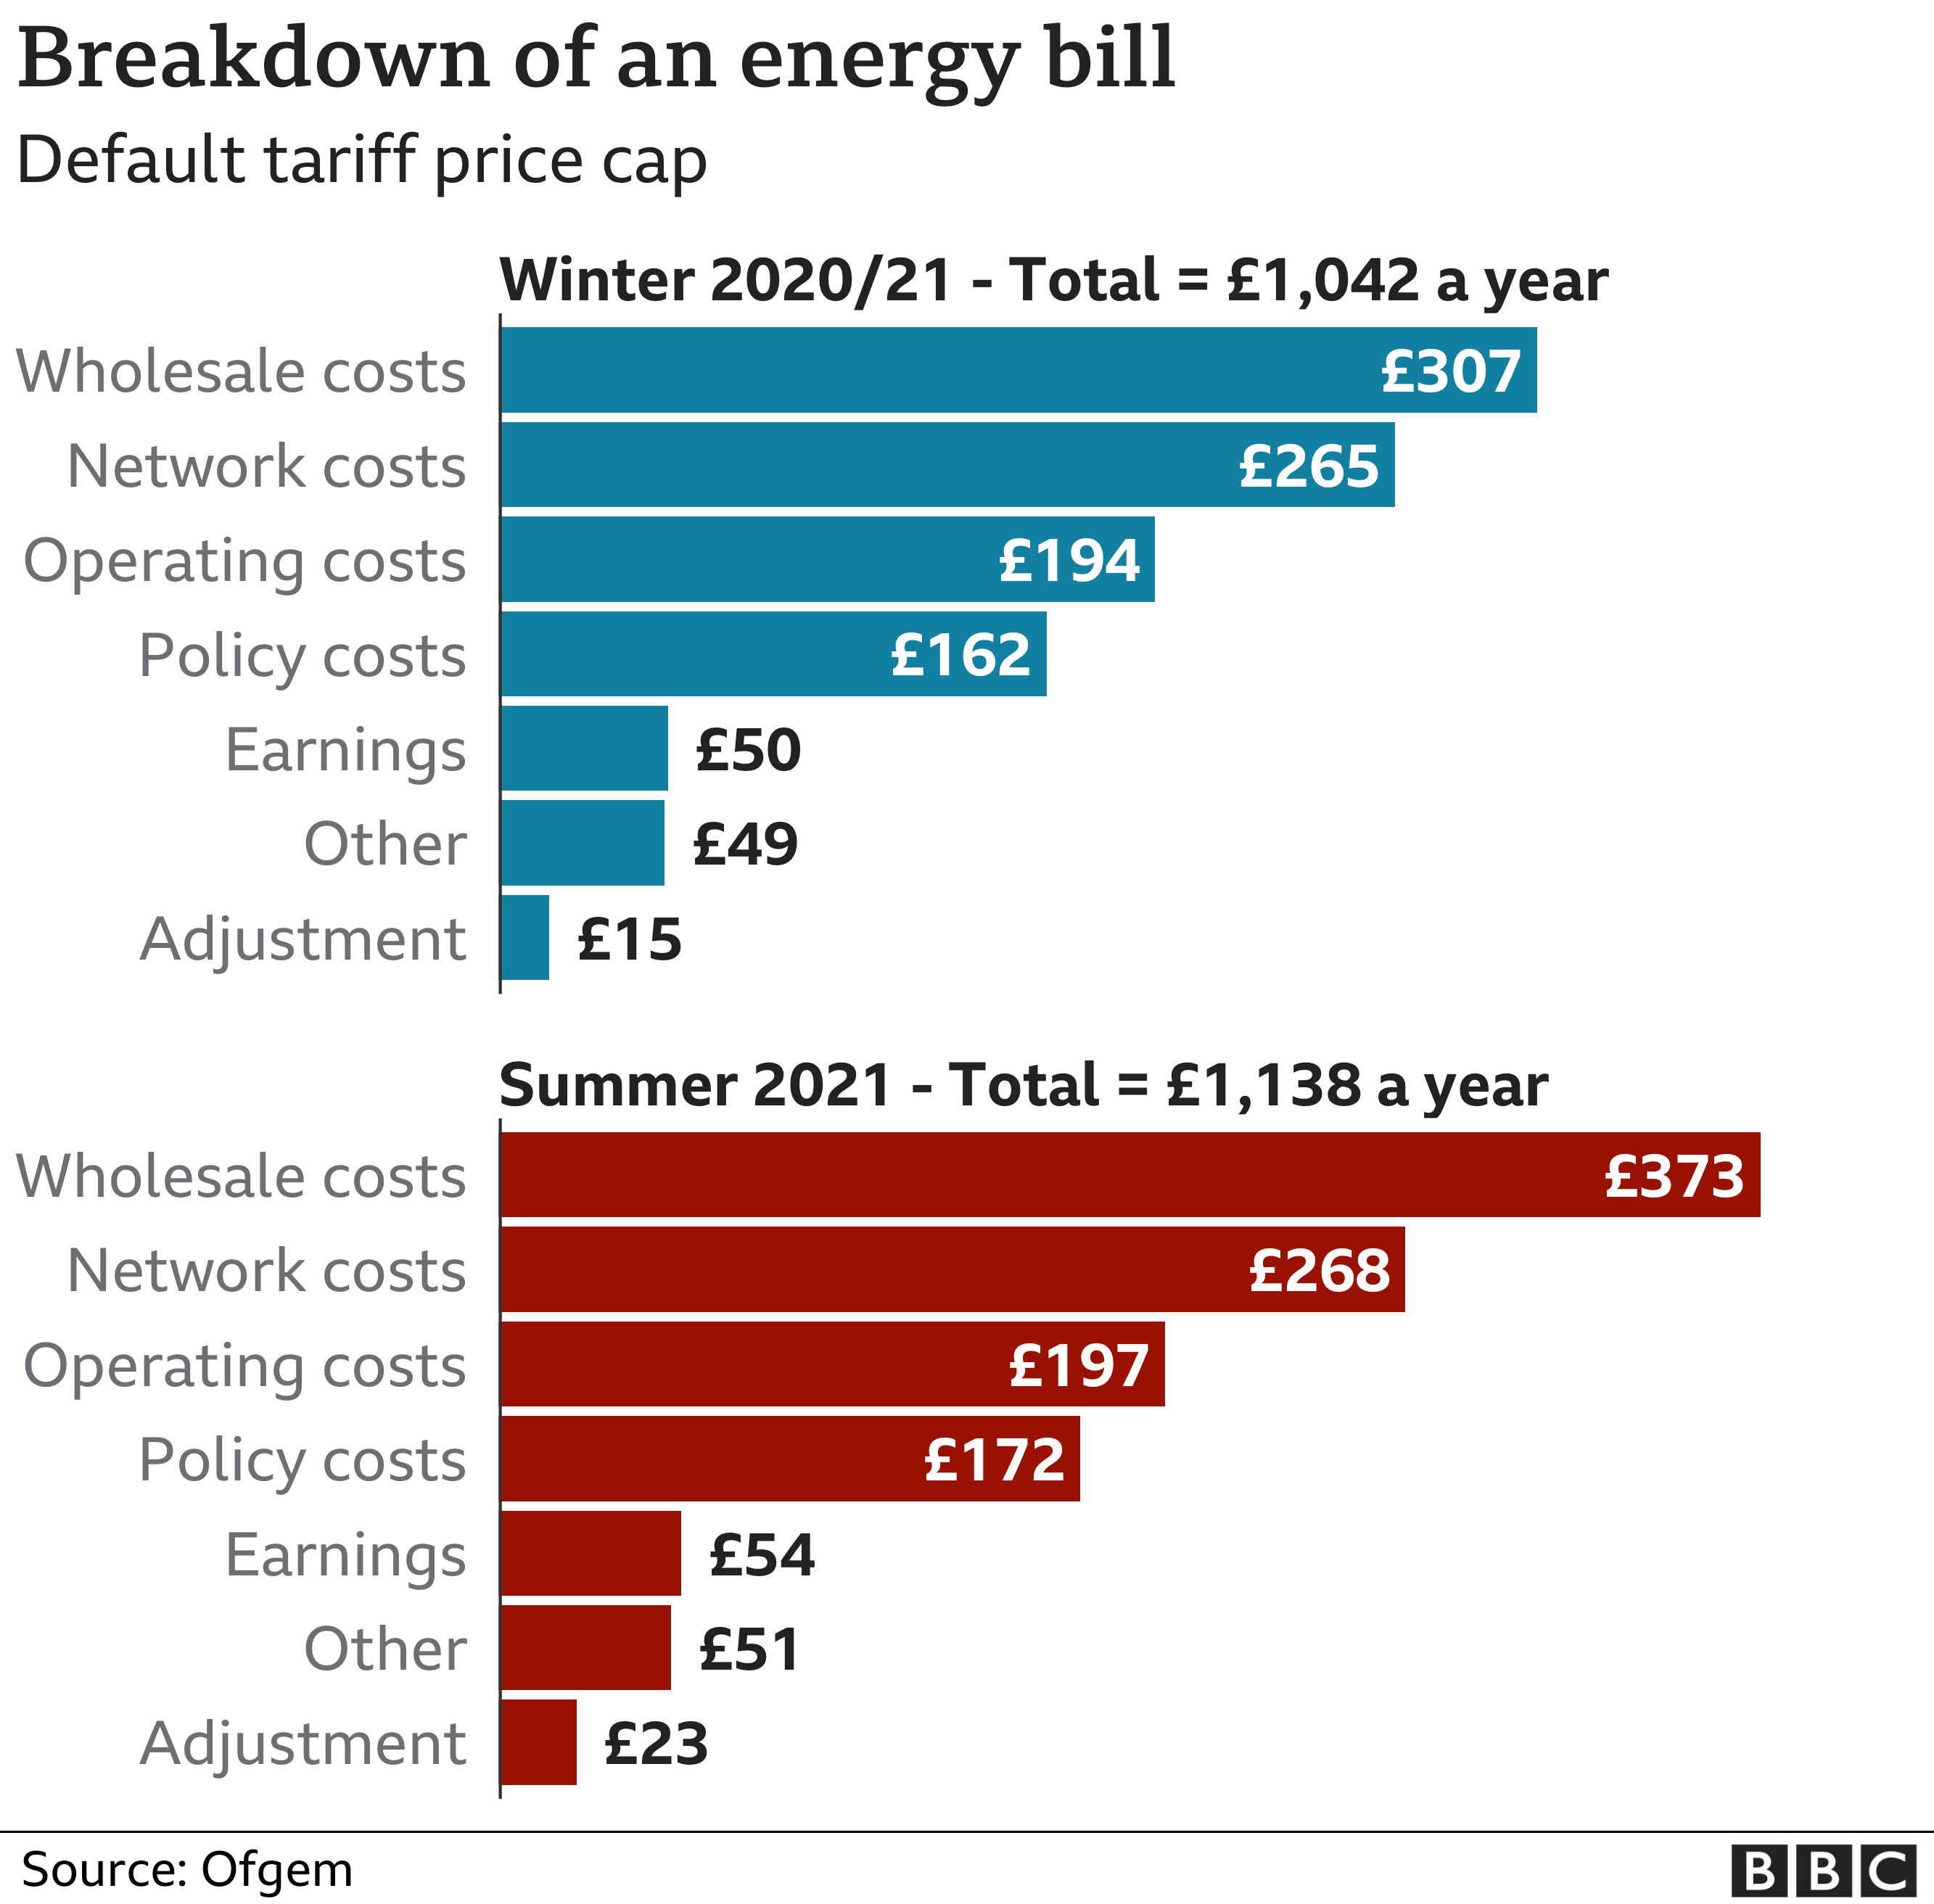 Breakdown of an energy bill